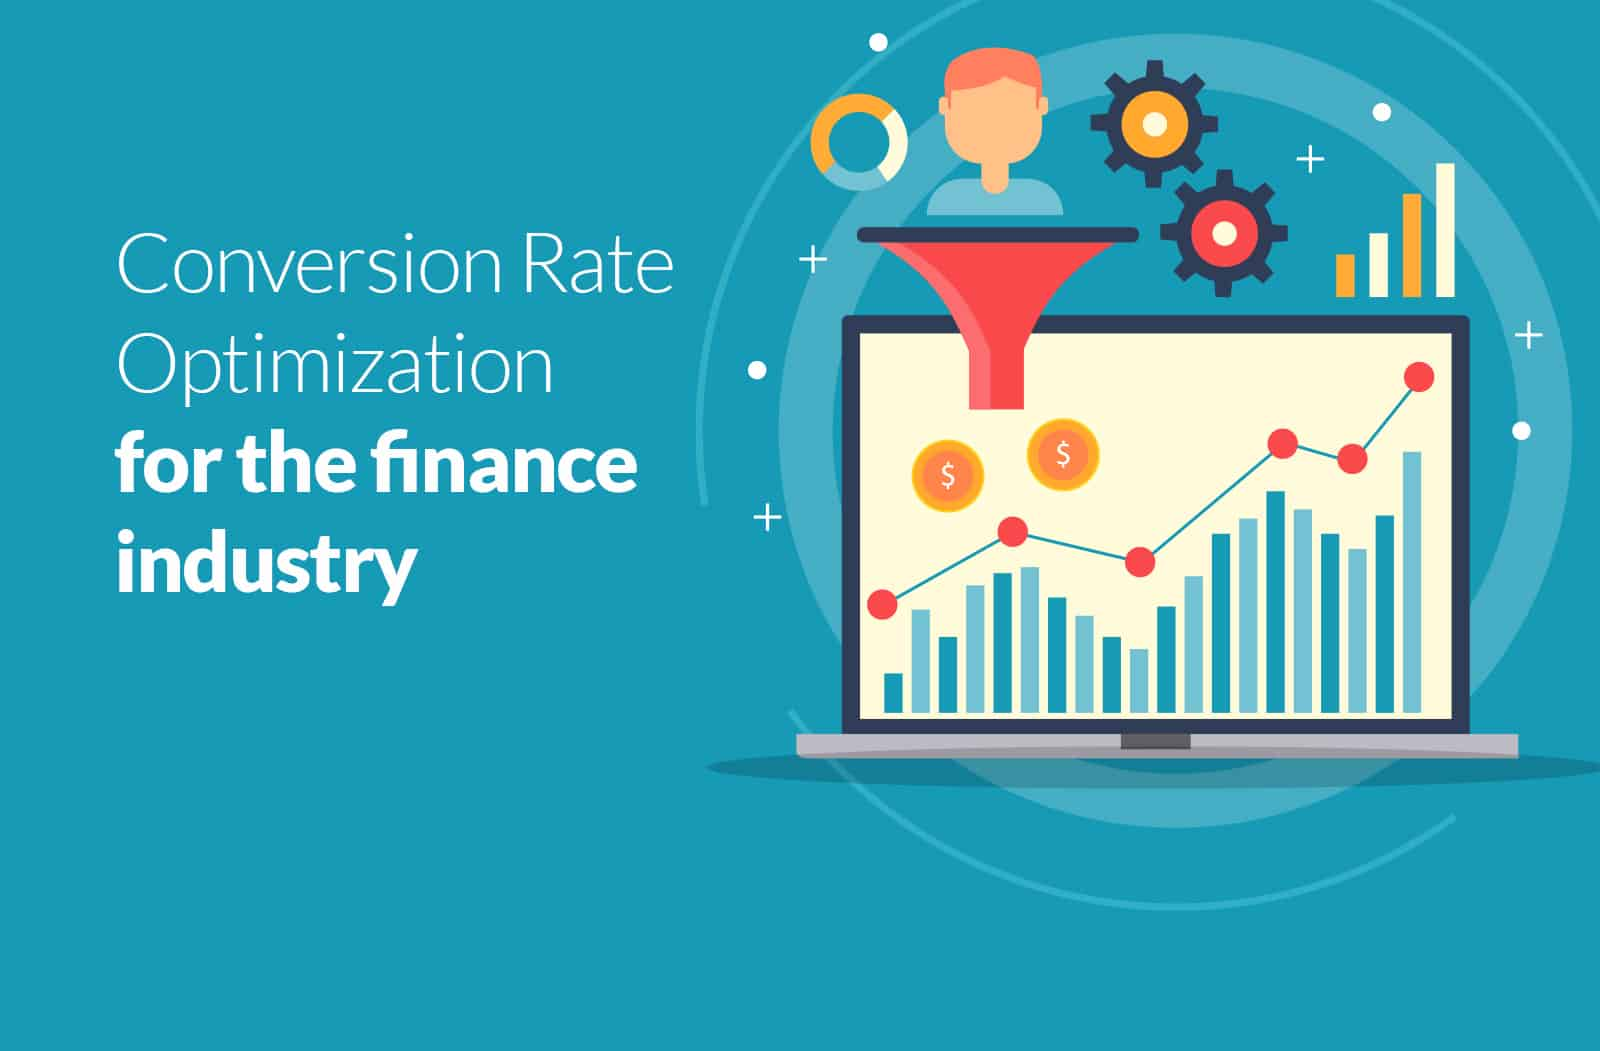 Conversion Rate Optimization for the Finance Industry